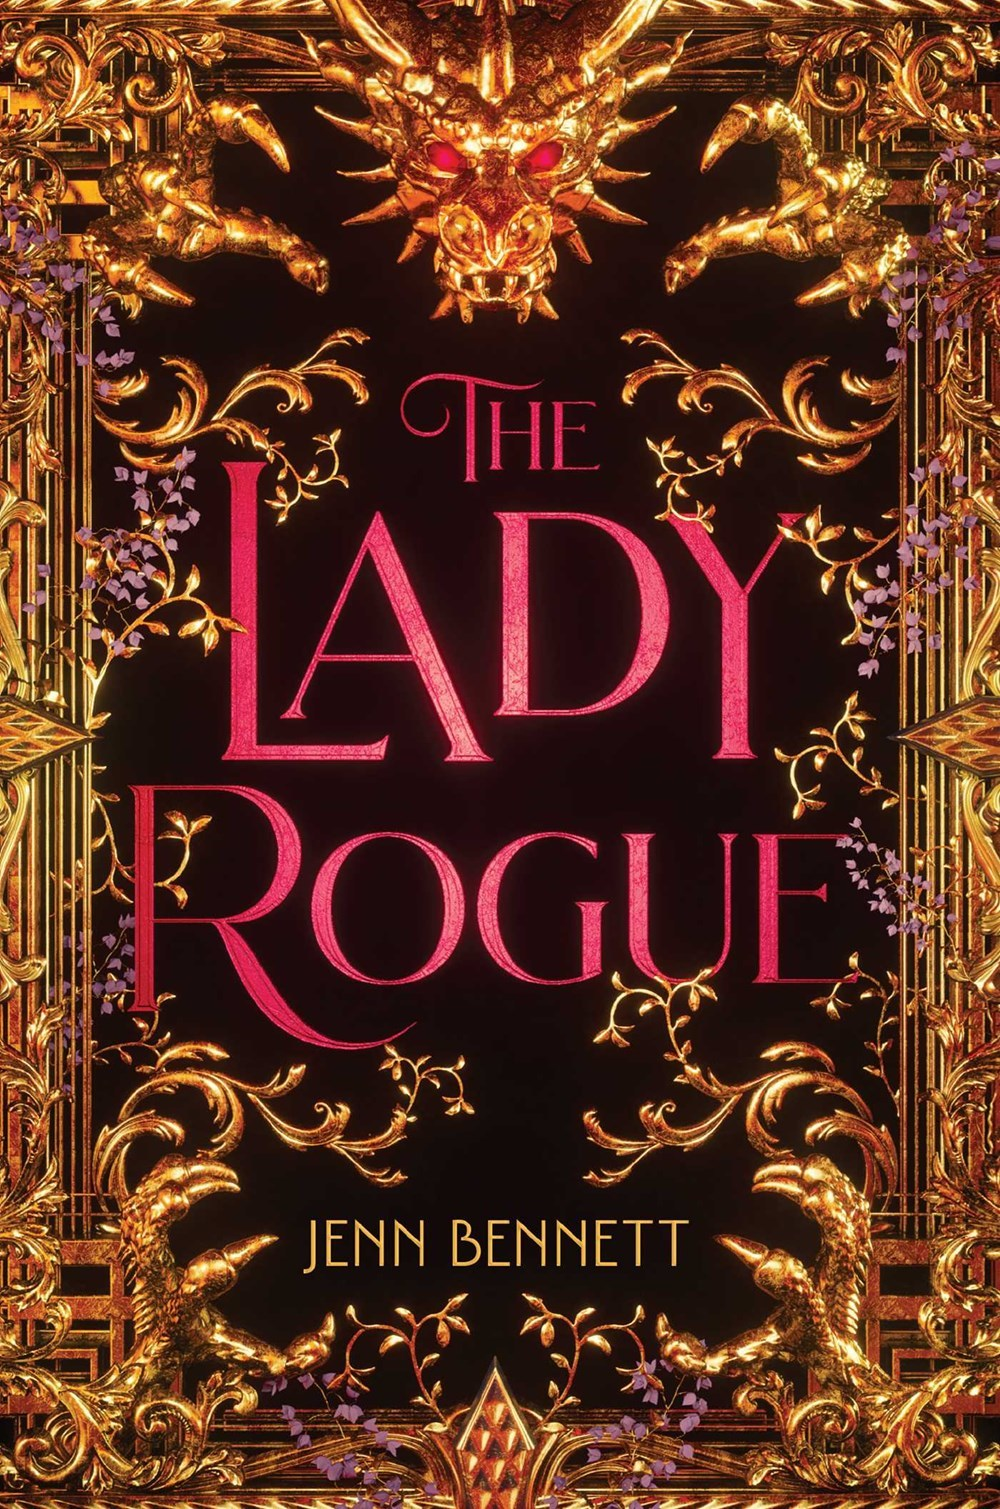 The Lady Rogue by Jenn Bennett